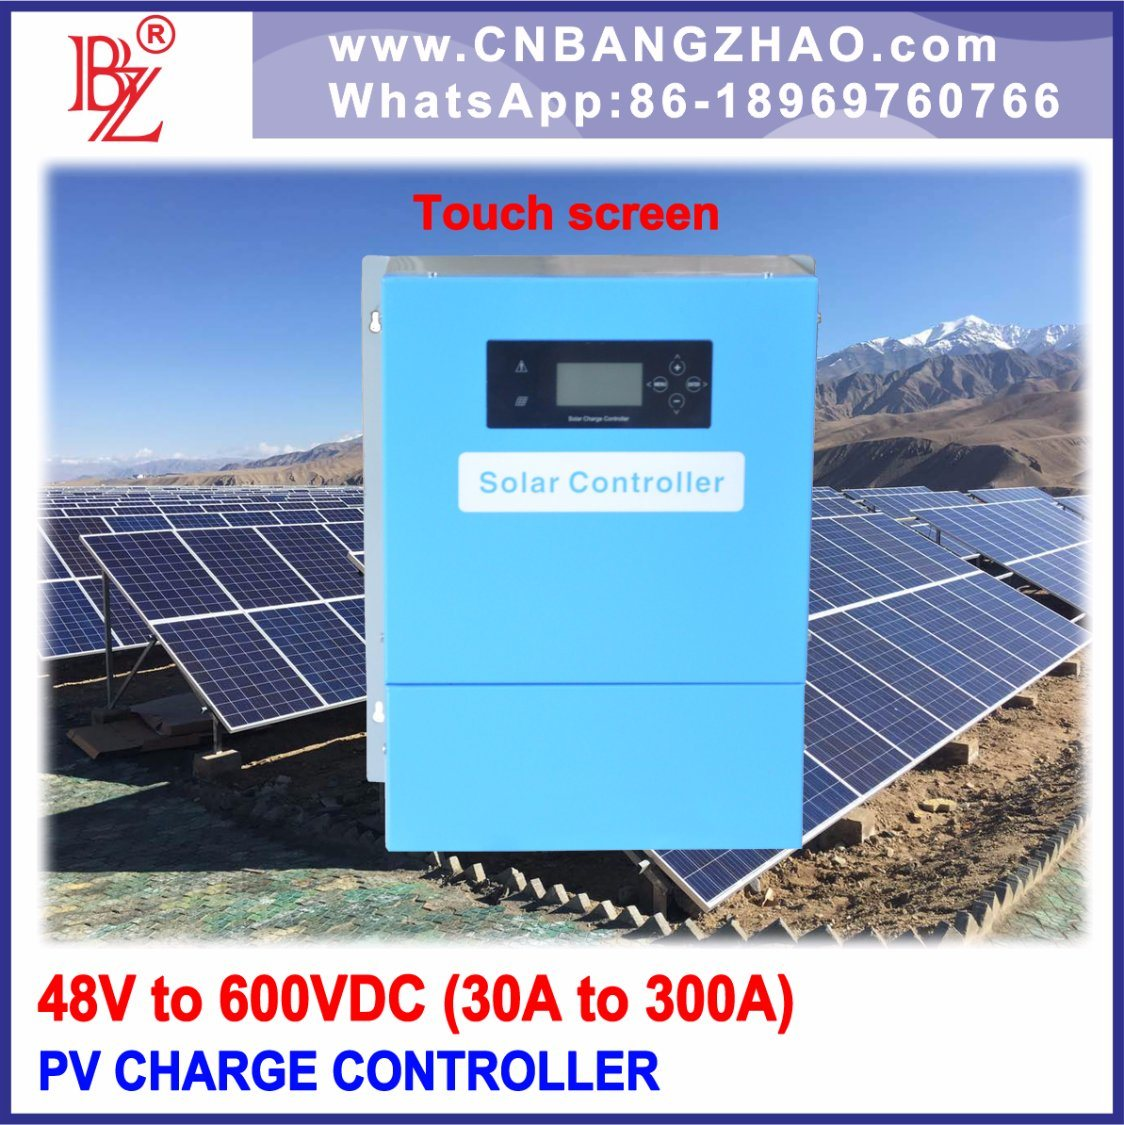 Solar Panel Battery Bank >> China 100a Solar Charge Regulator For 96v Battery Bank With Touch